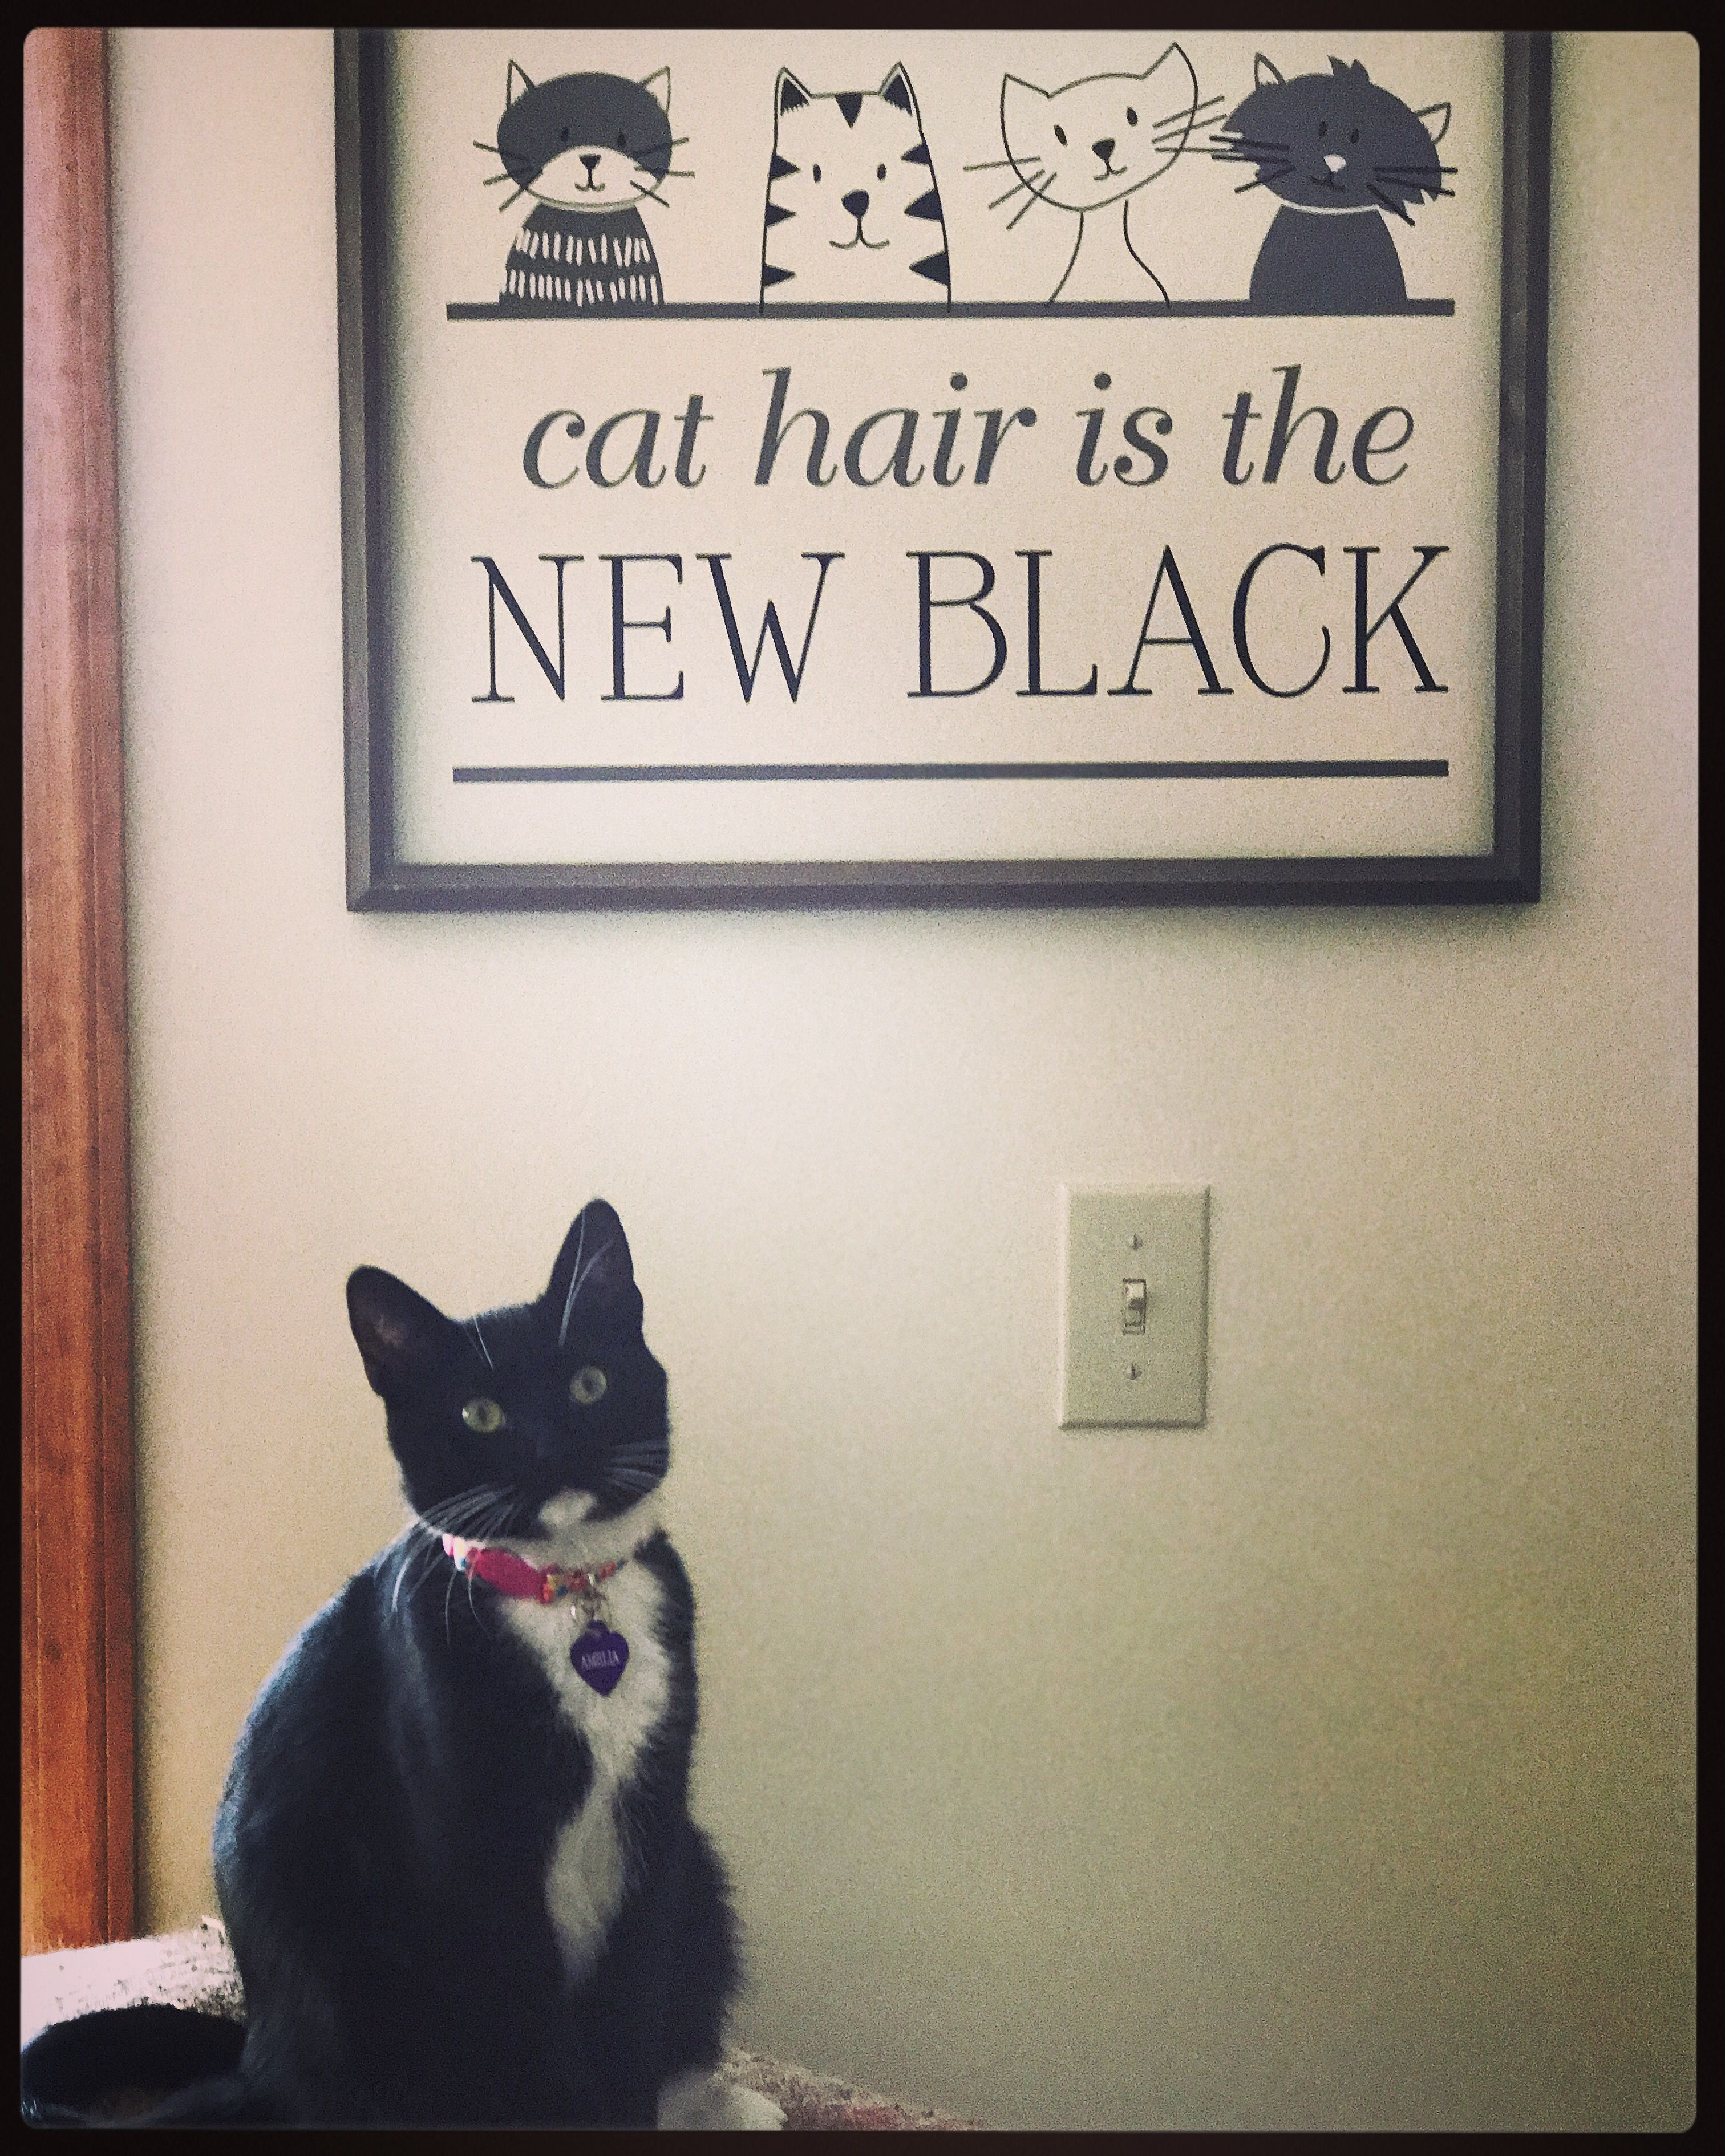 Cat hair is the new black!! uppercaseliving Cat hair